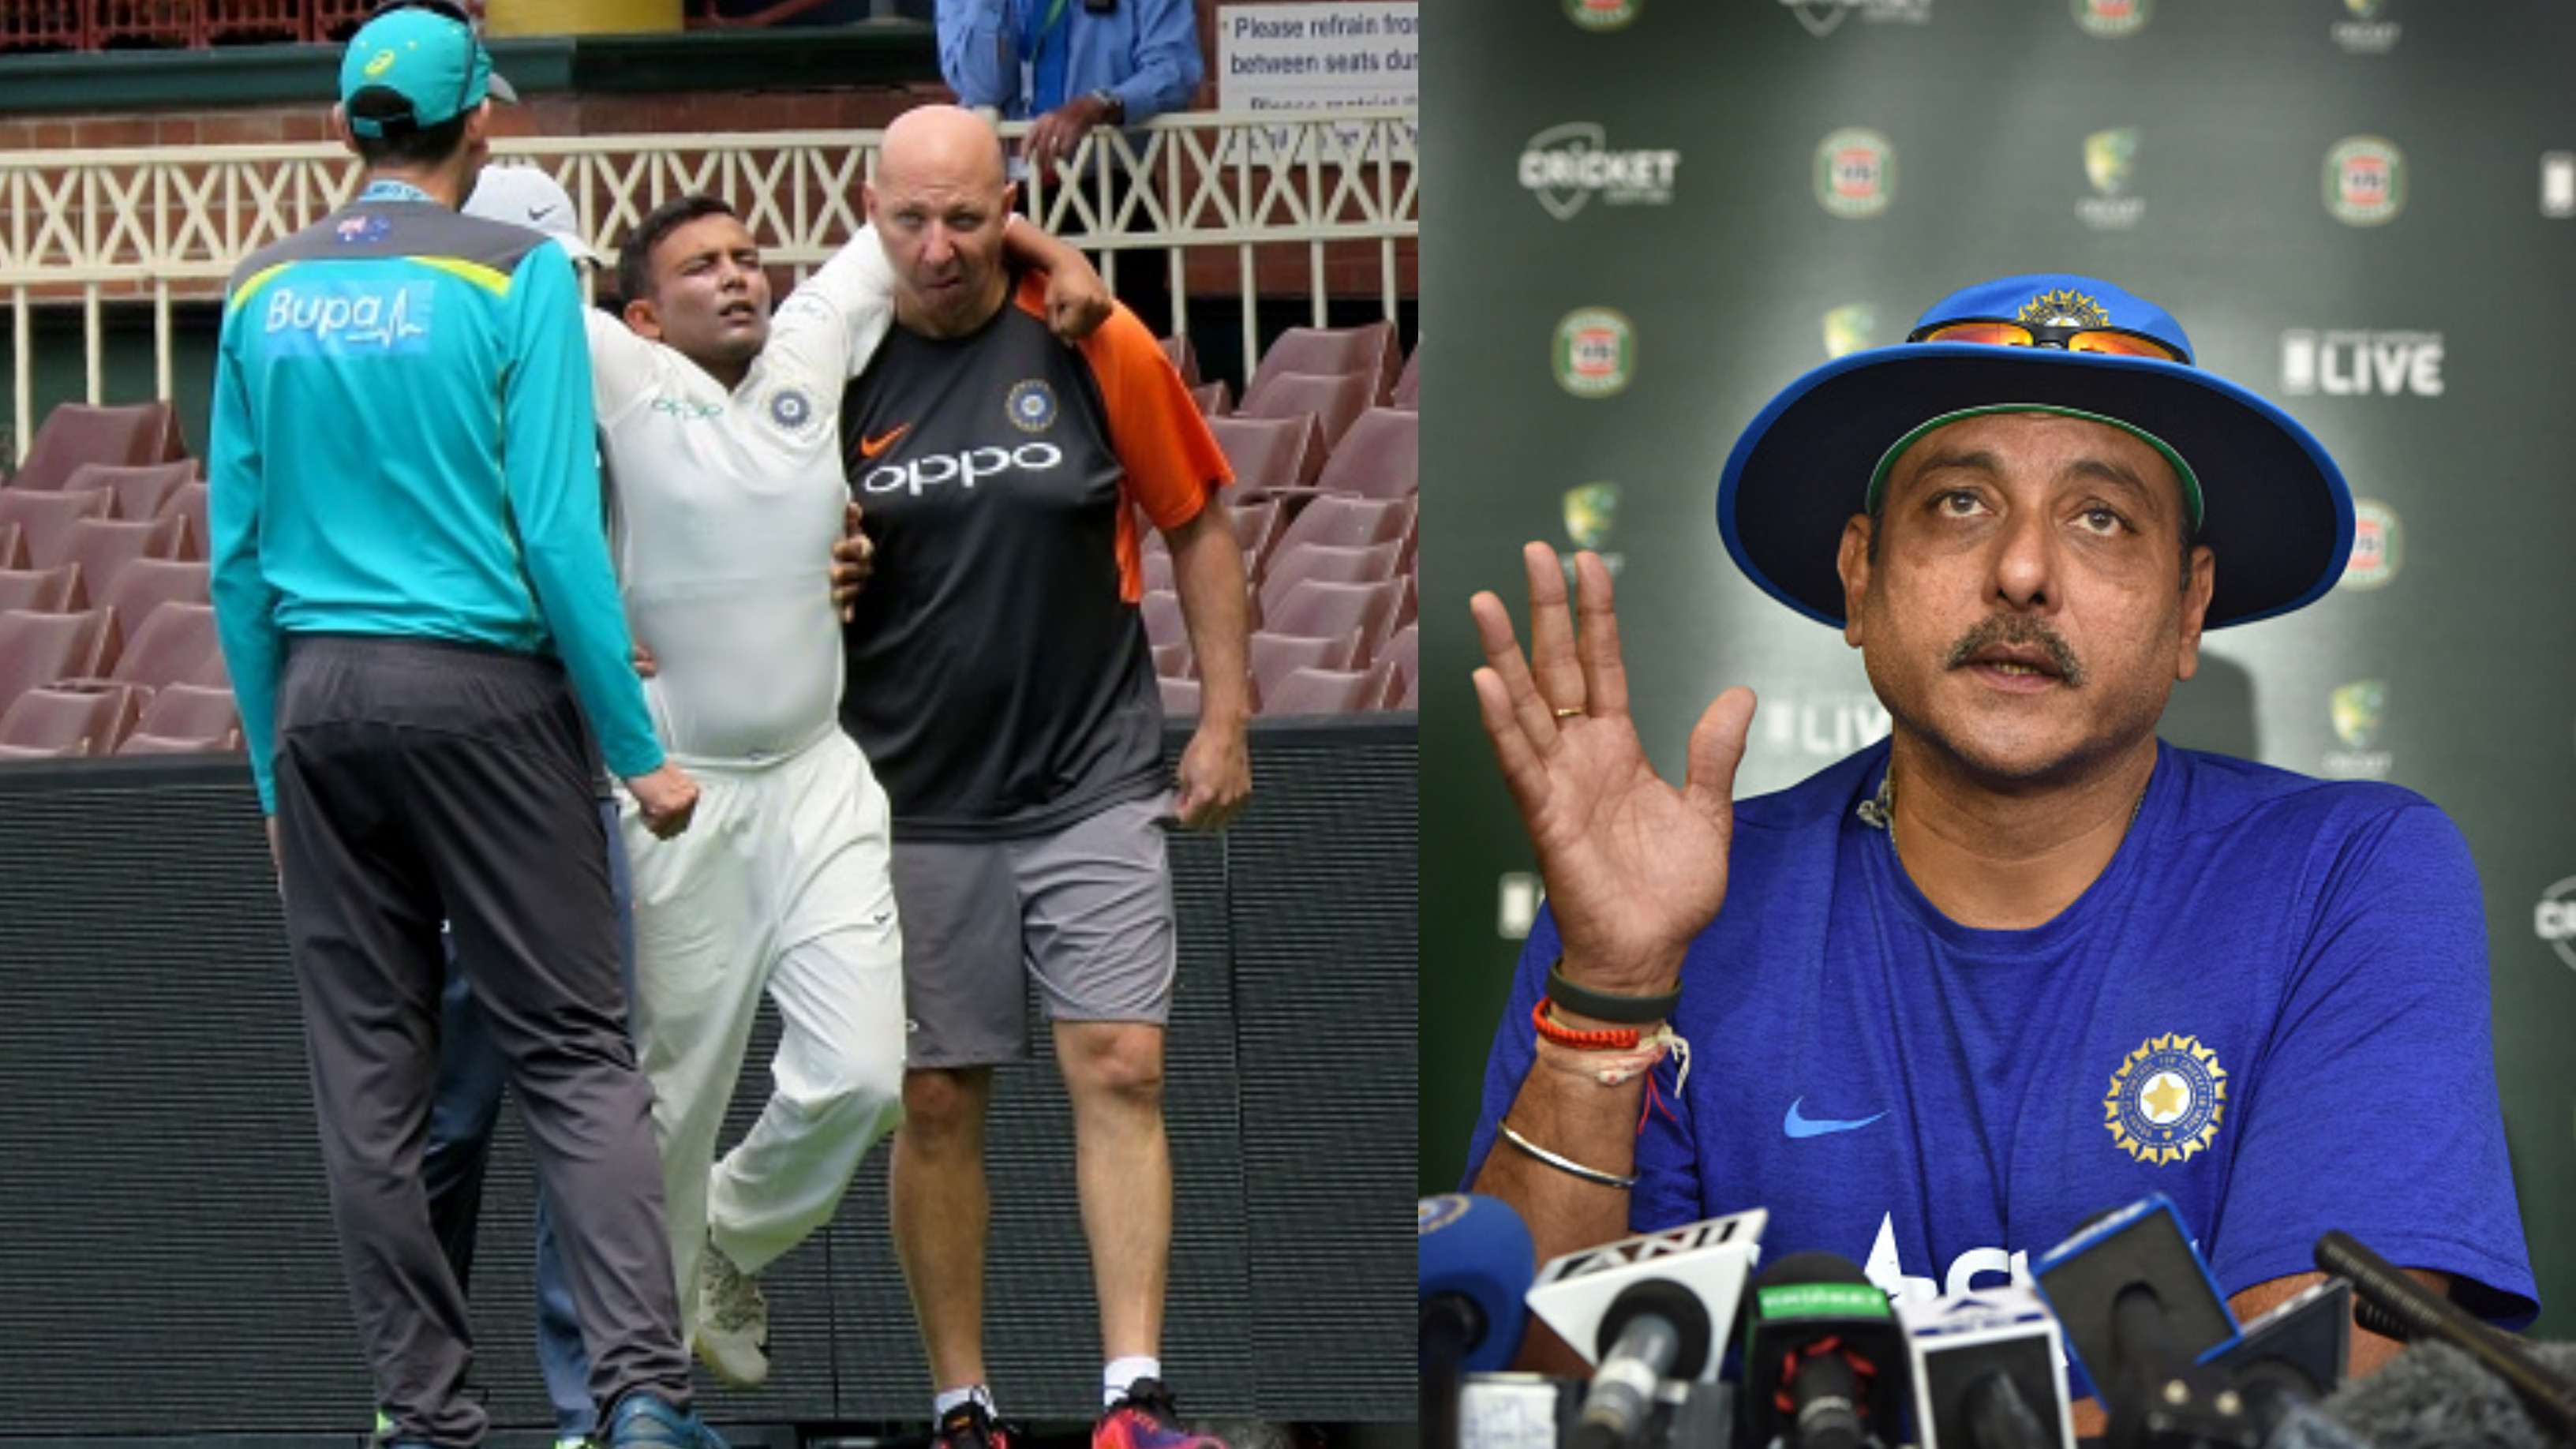 AUS v IND 2018-19: Ravi Shastri provides a fitness update on Prithvi Shaw